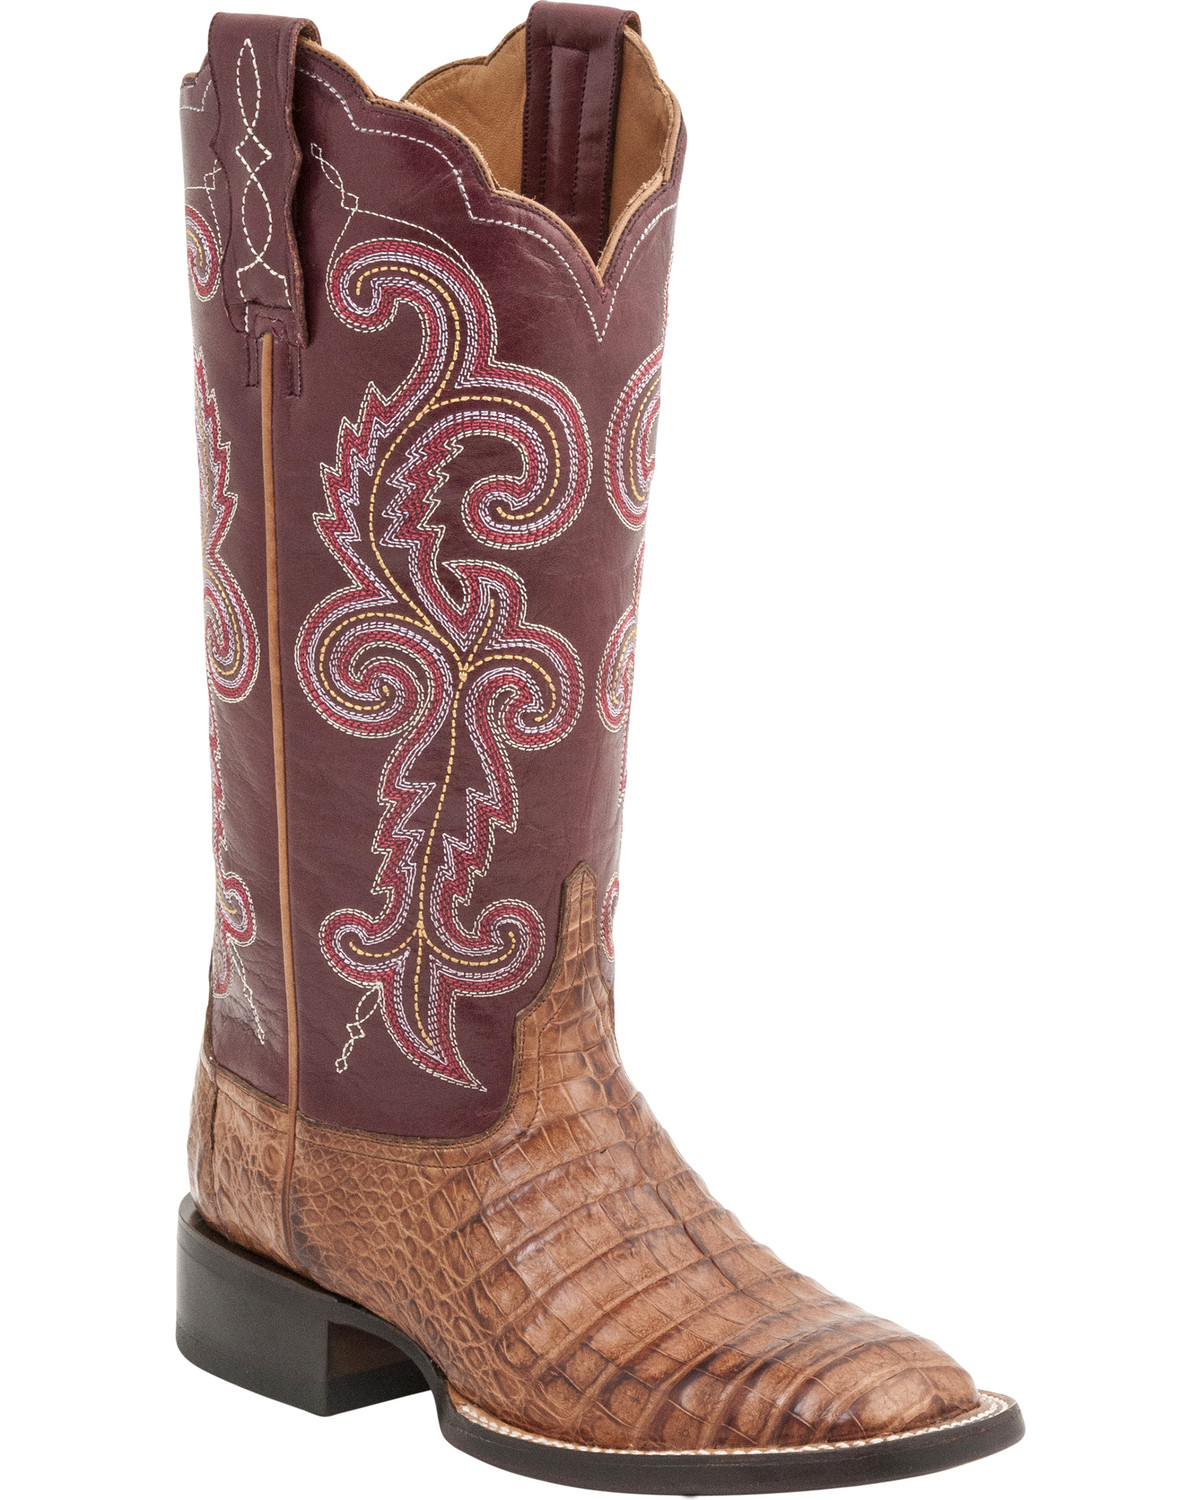 1d22bb8f9ac Lucchese Women's Annalyn Exotic Caiman Western Boots